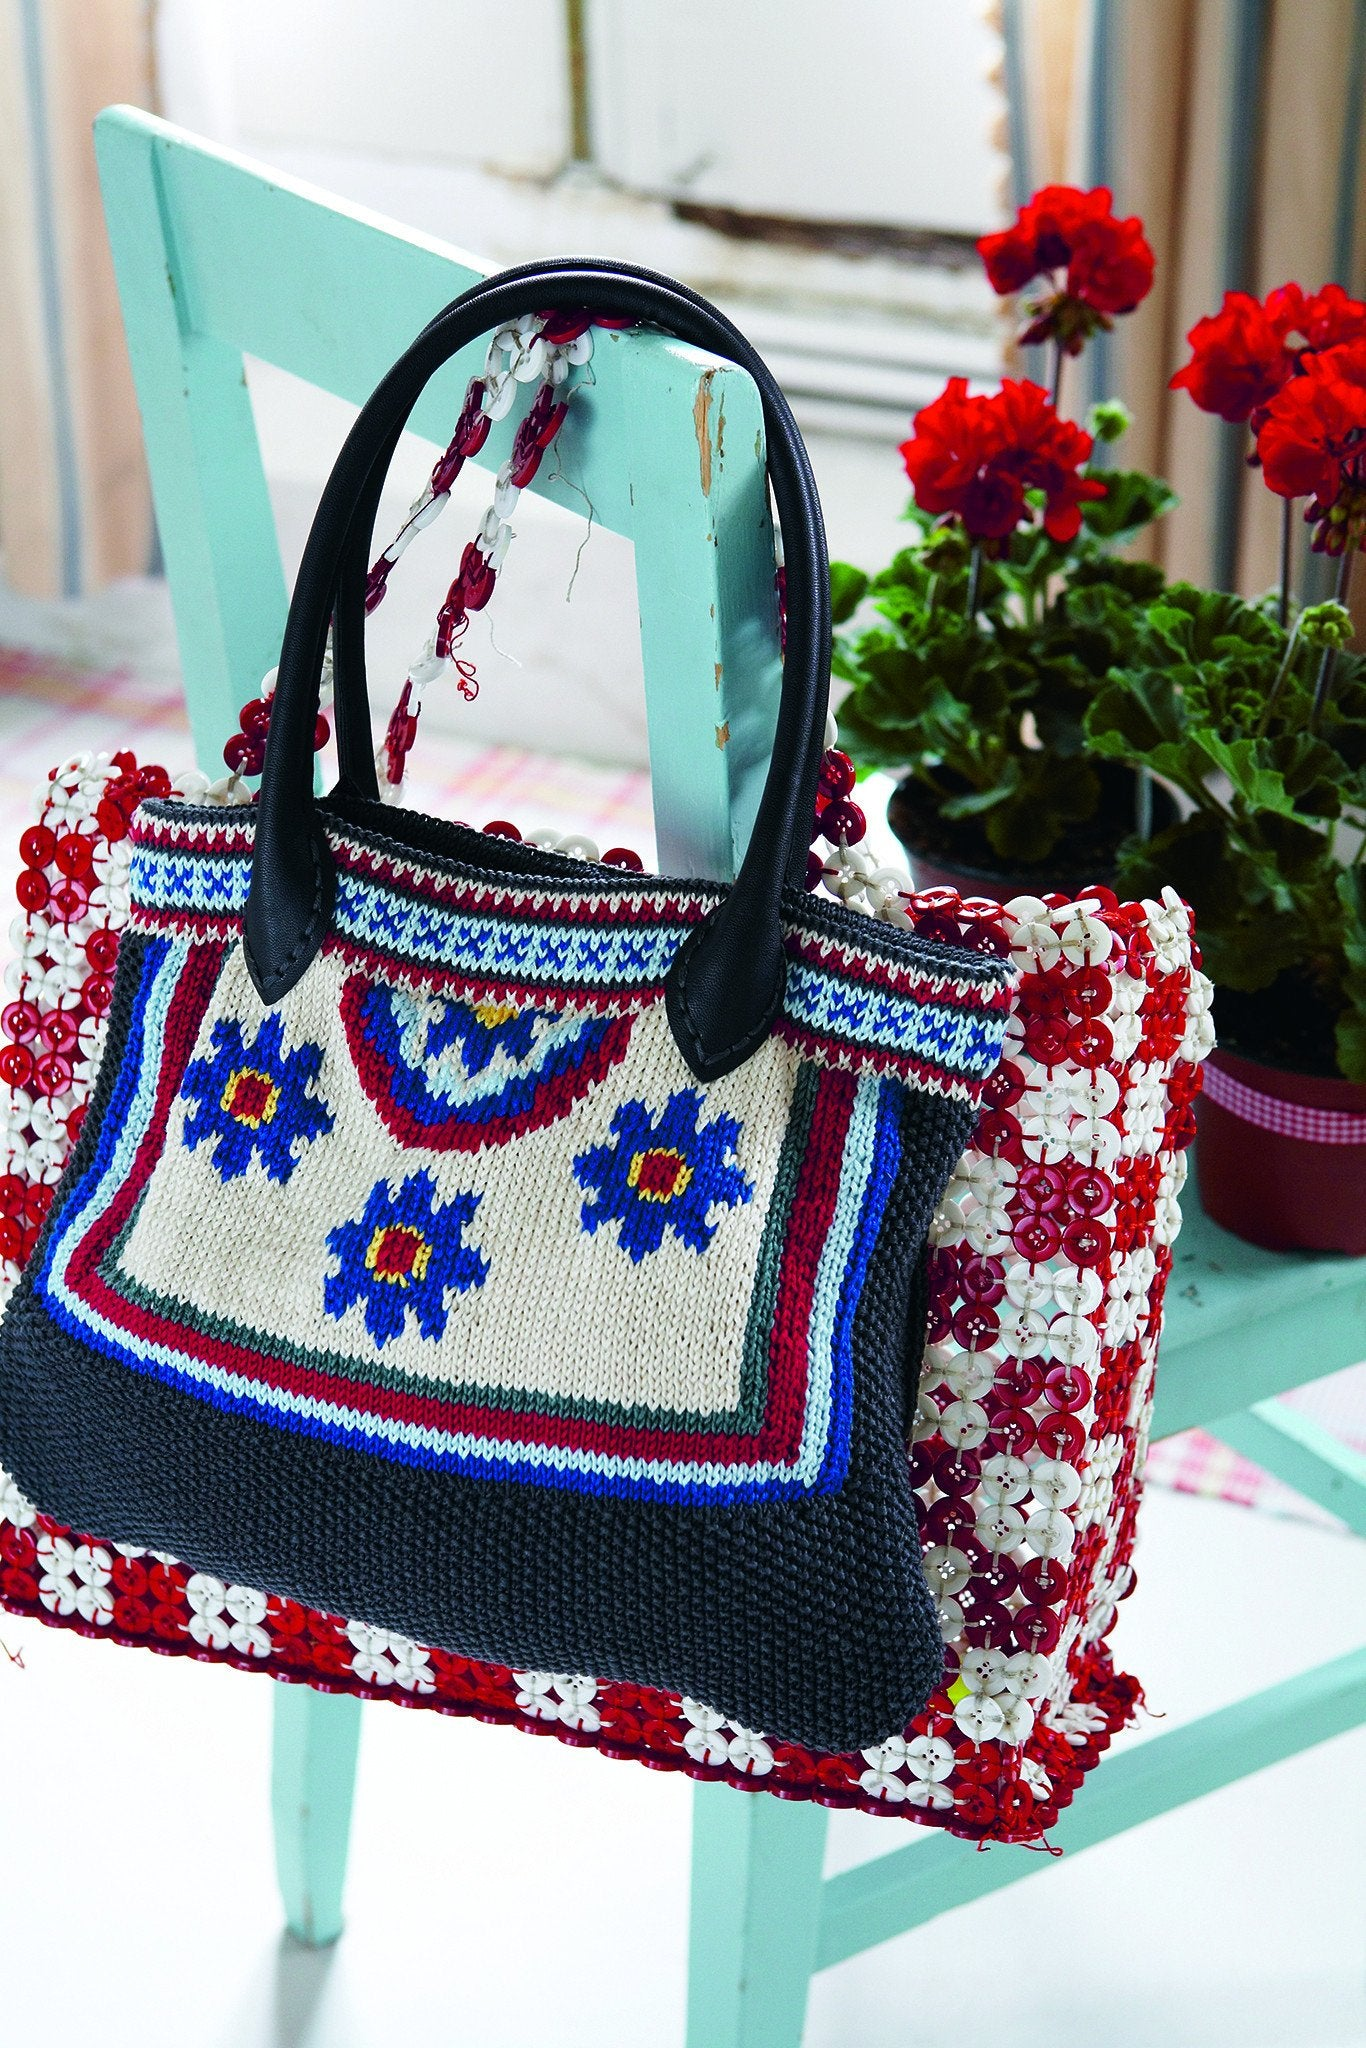 Floral fair isle and intarsia bag knitting pattern the knitting floral fair isle and intarsia bag knitting pattern bankloansurffo Gallery